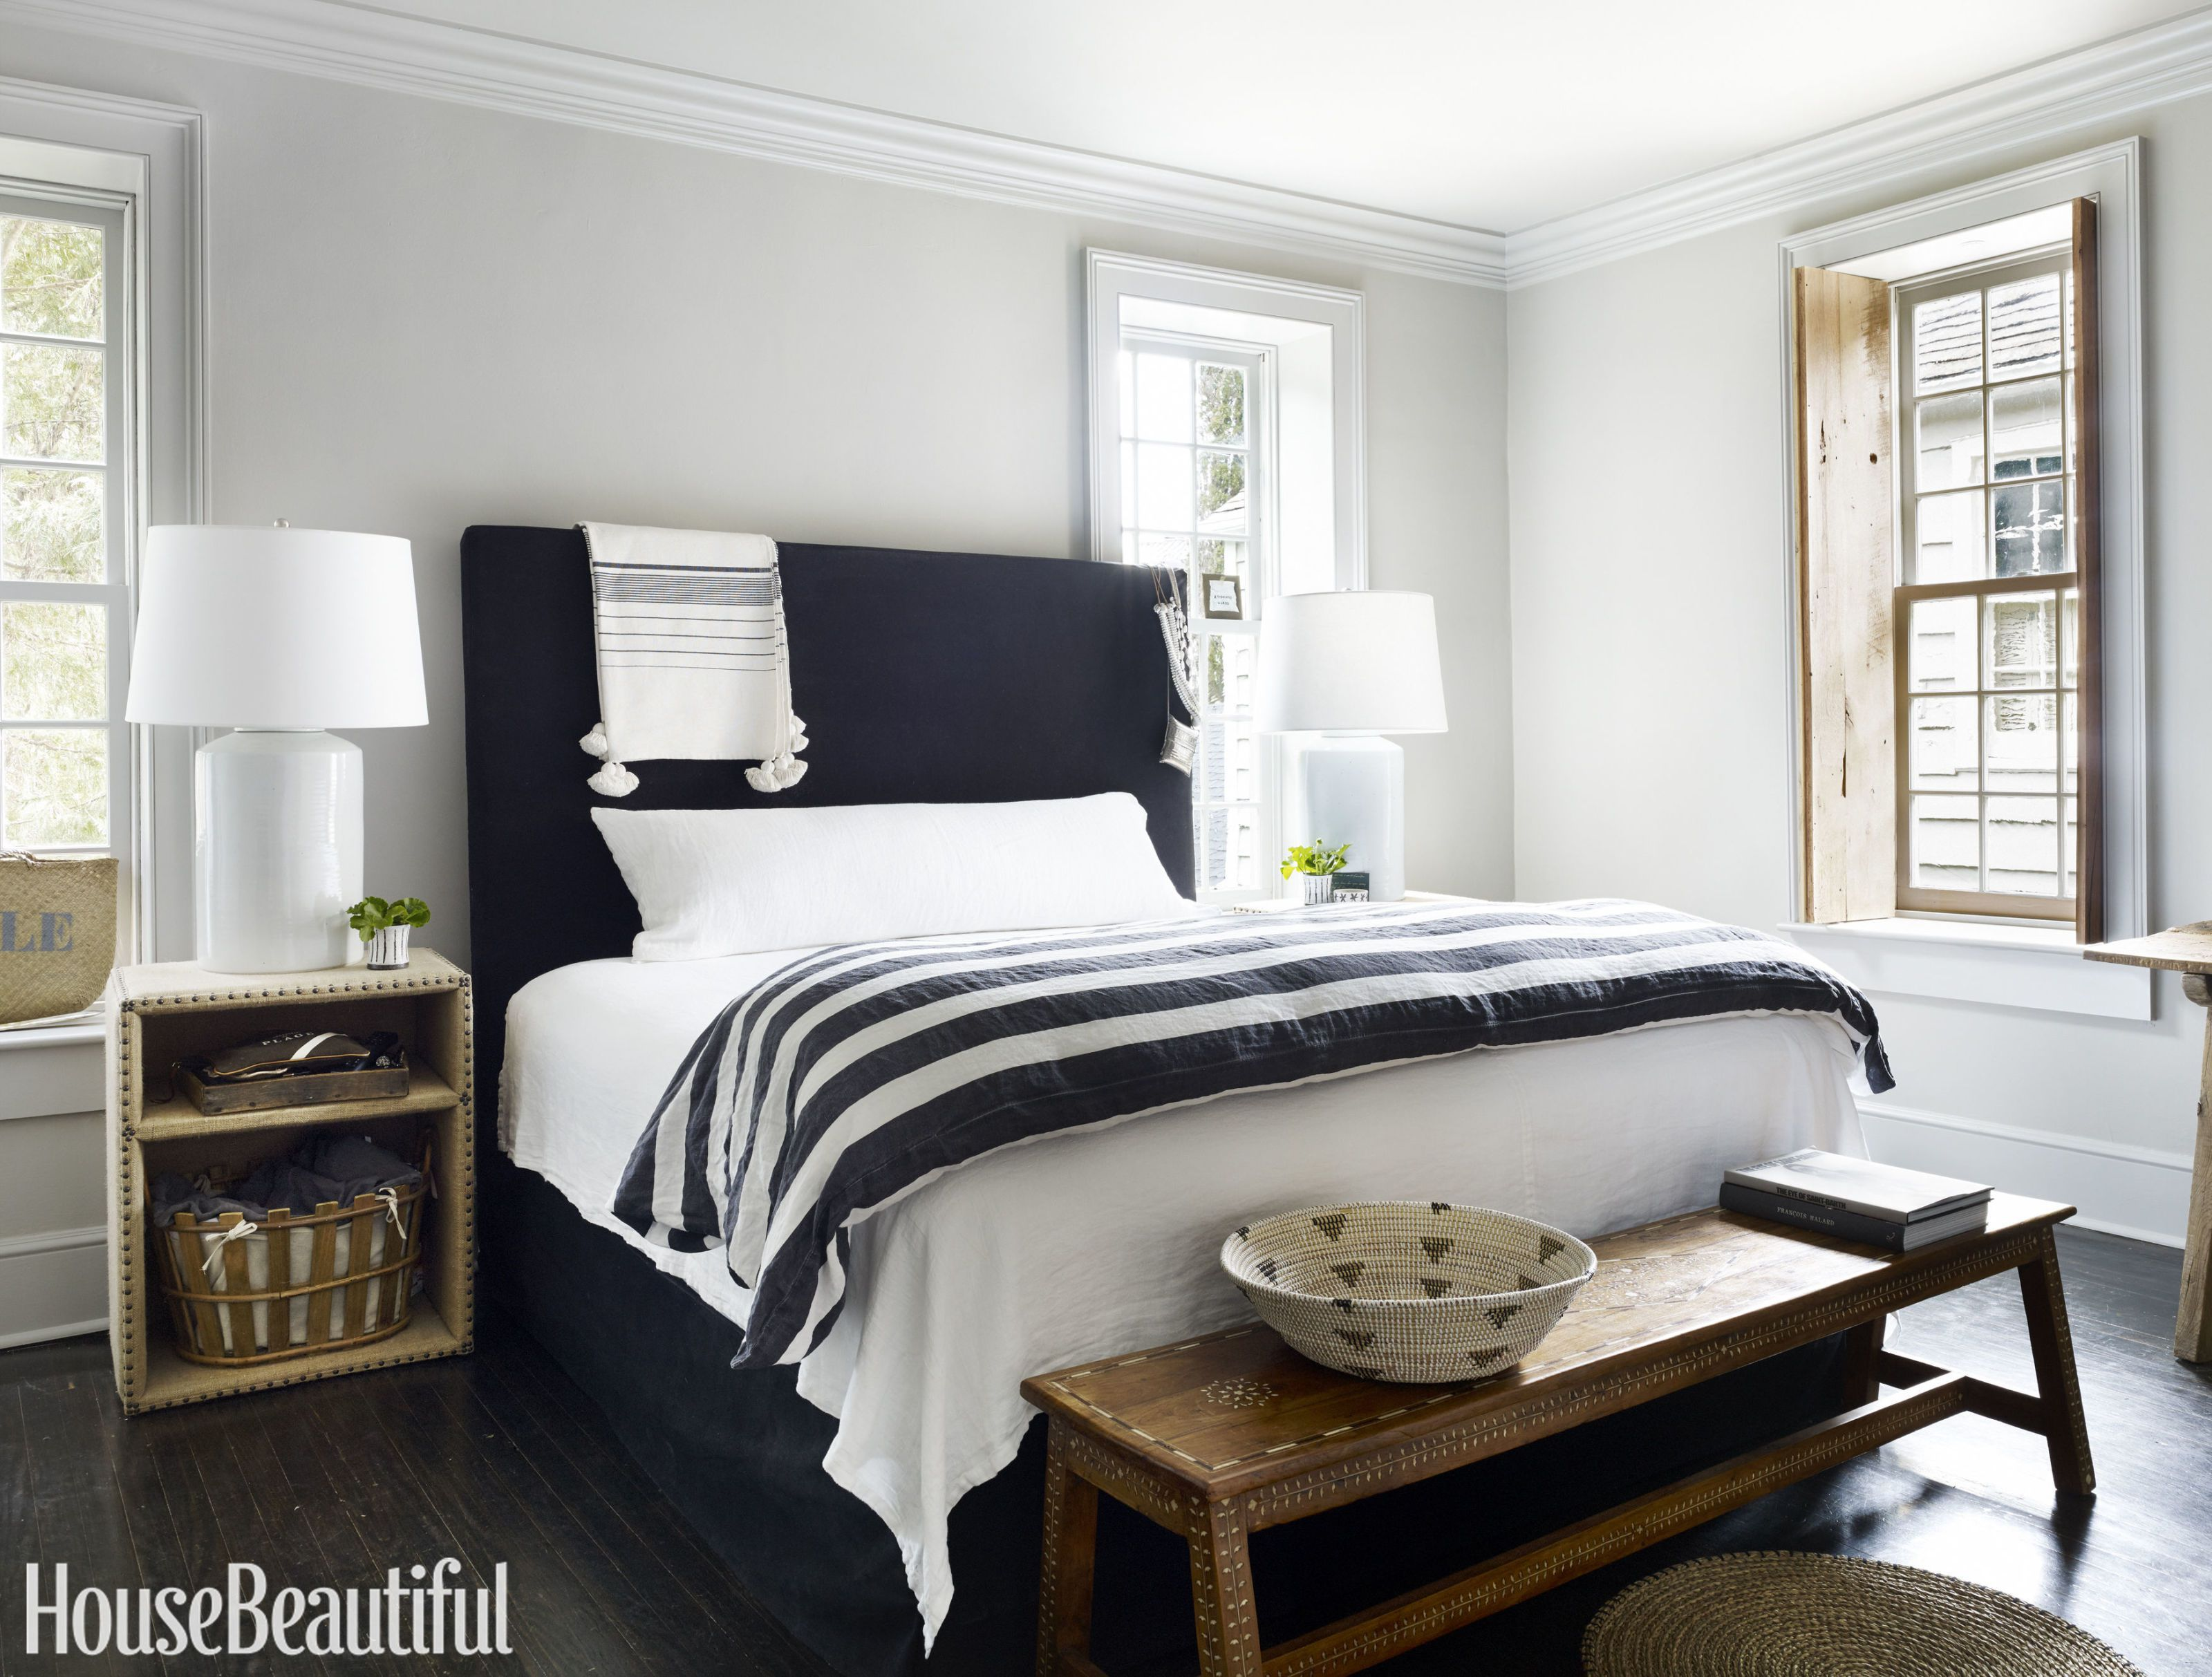 15 beautiful black and white bedroom ideas - black and white decor BVMDTPL